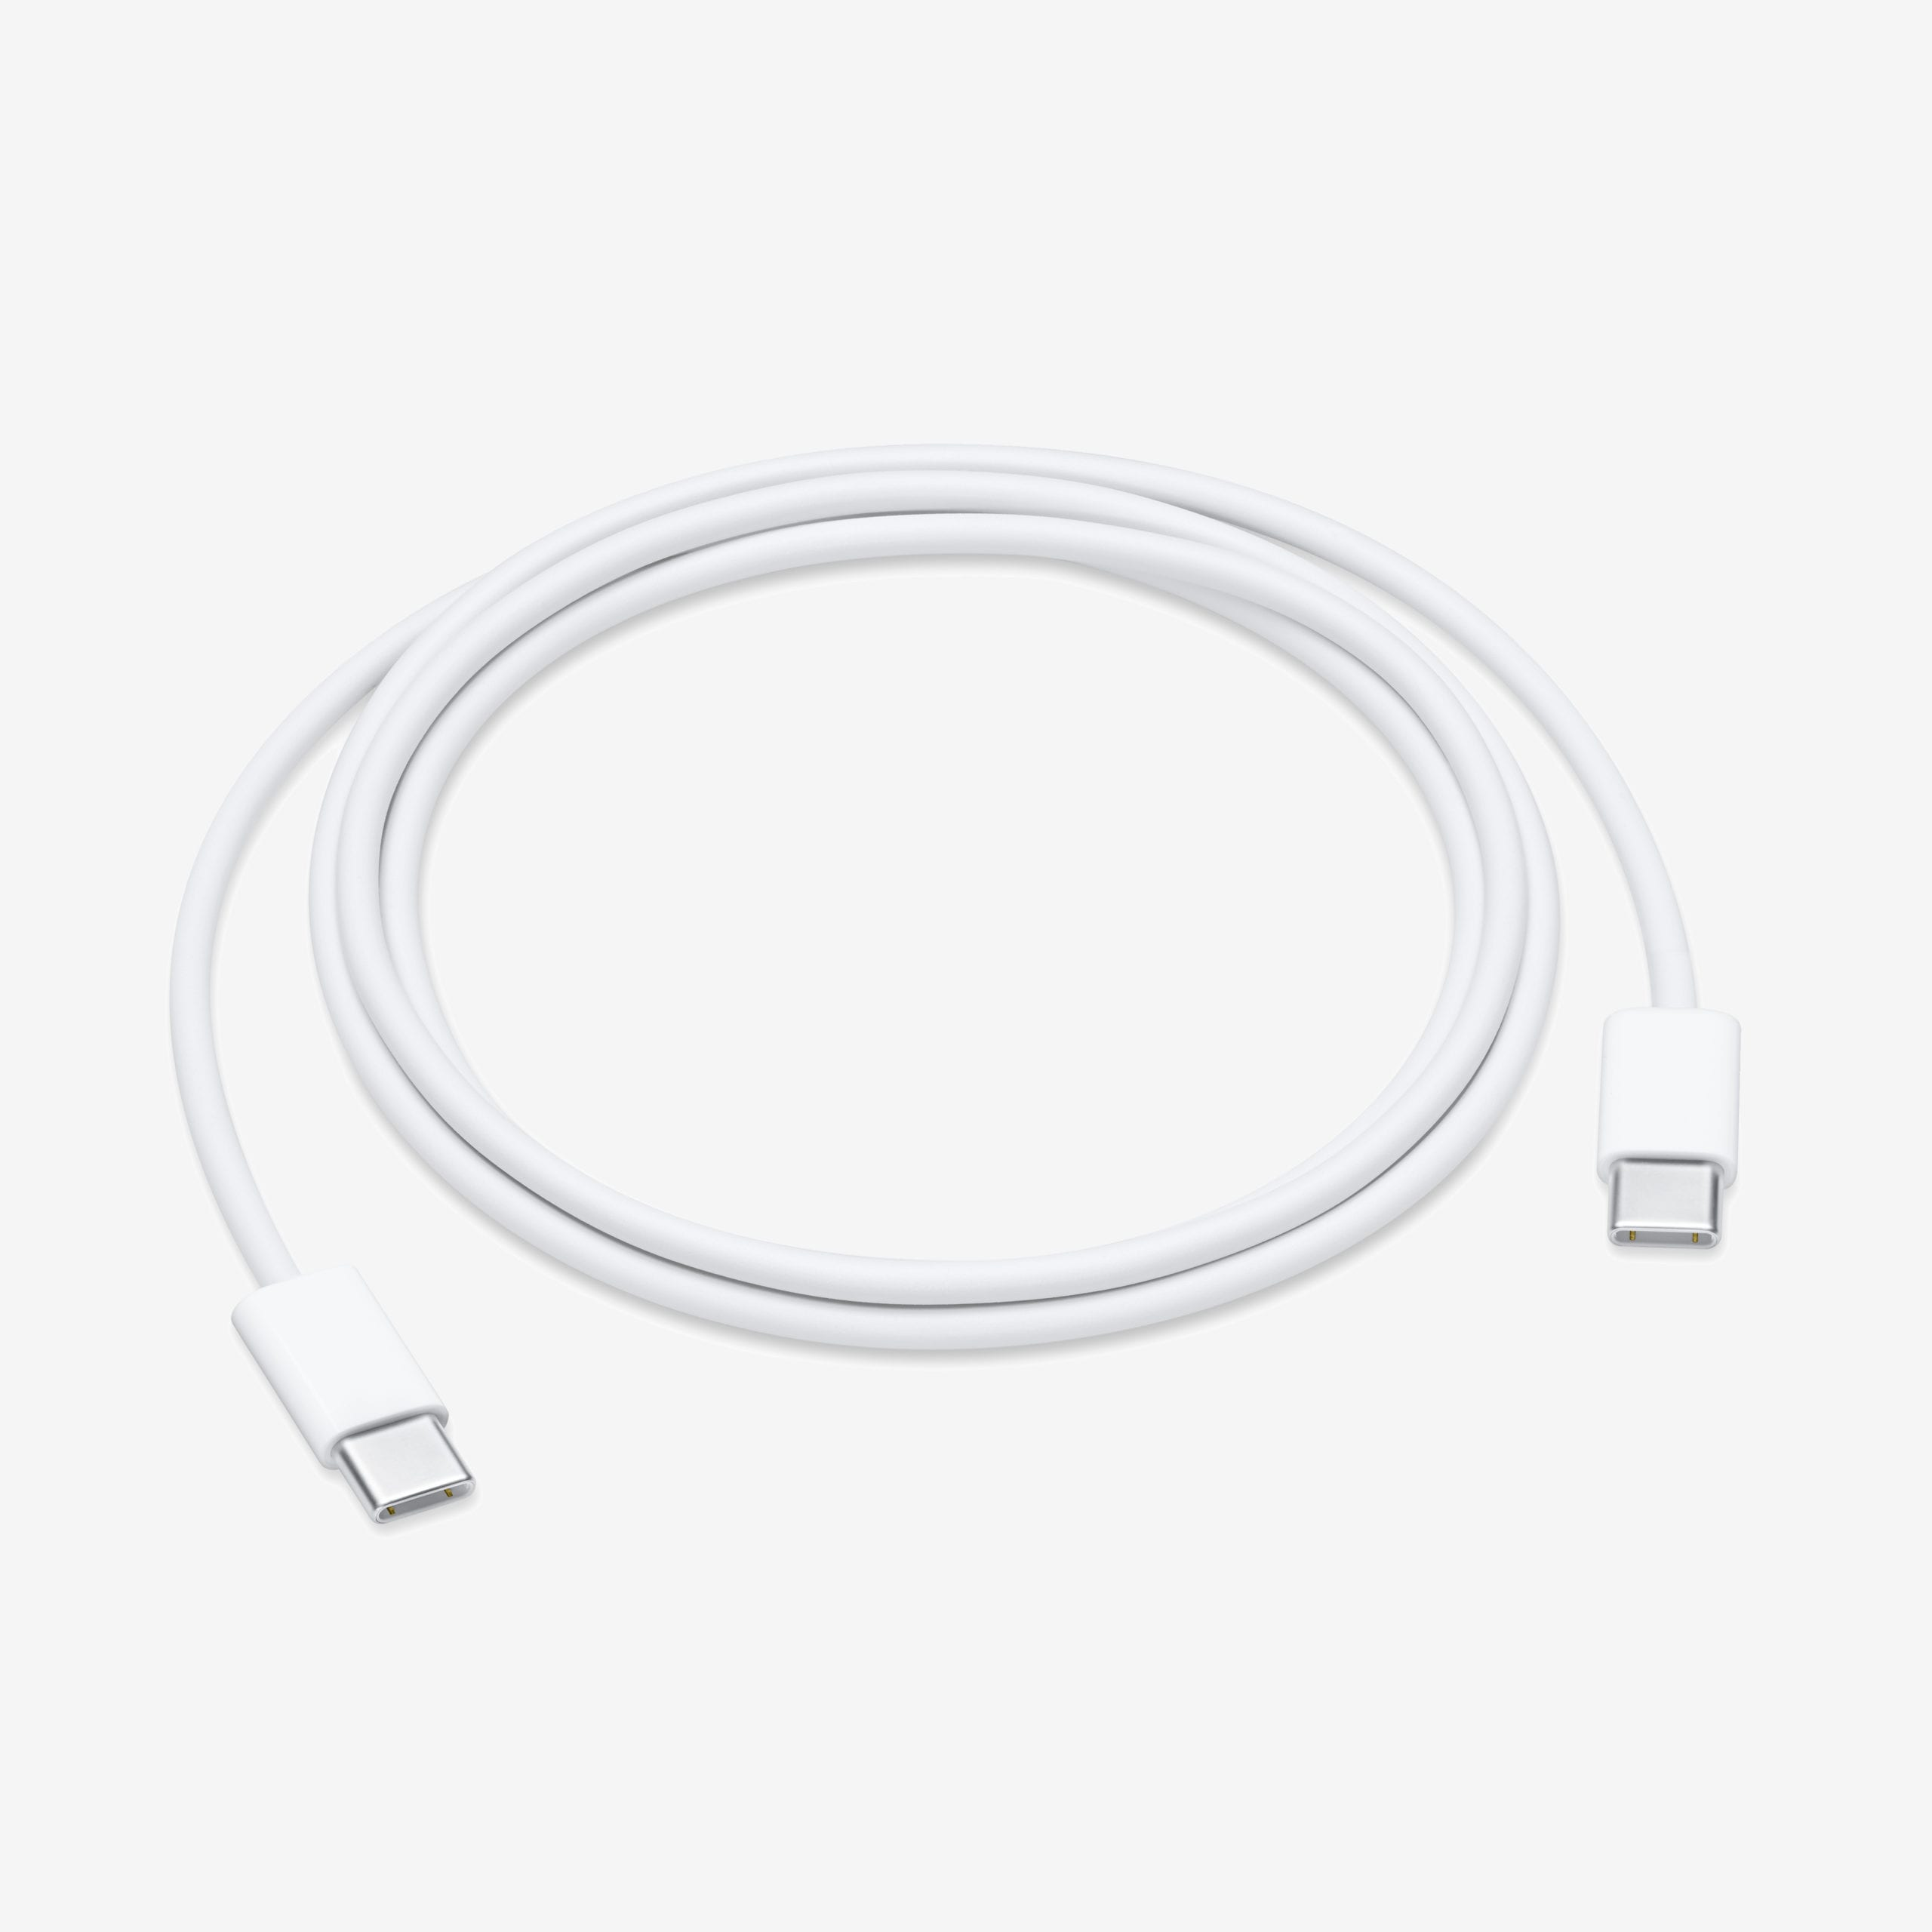 1 x 1m USB-C Cable